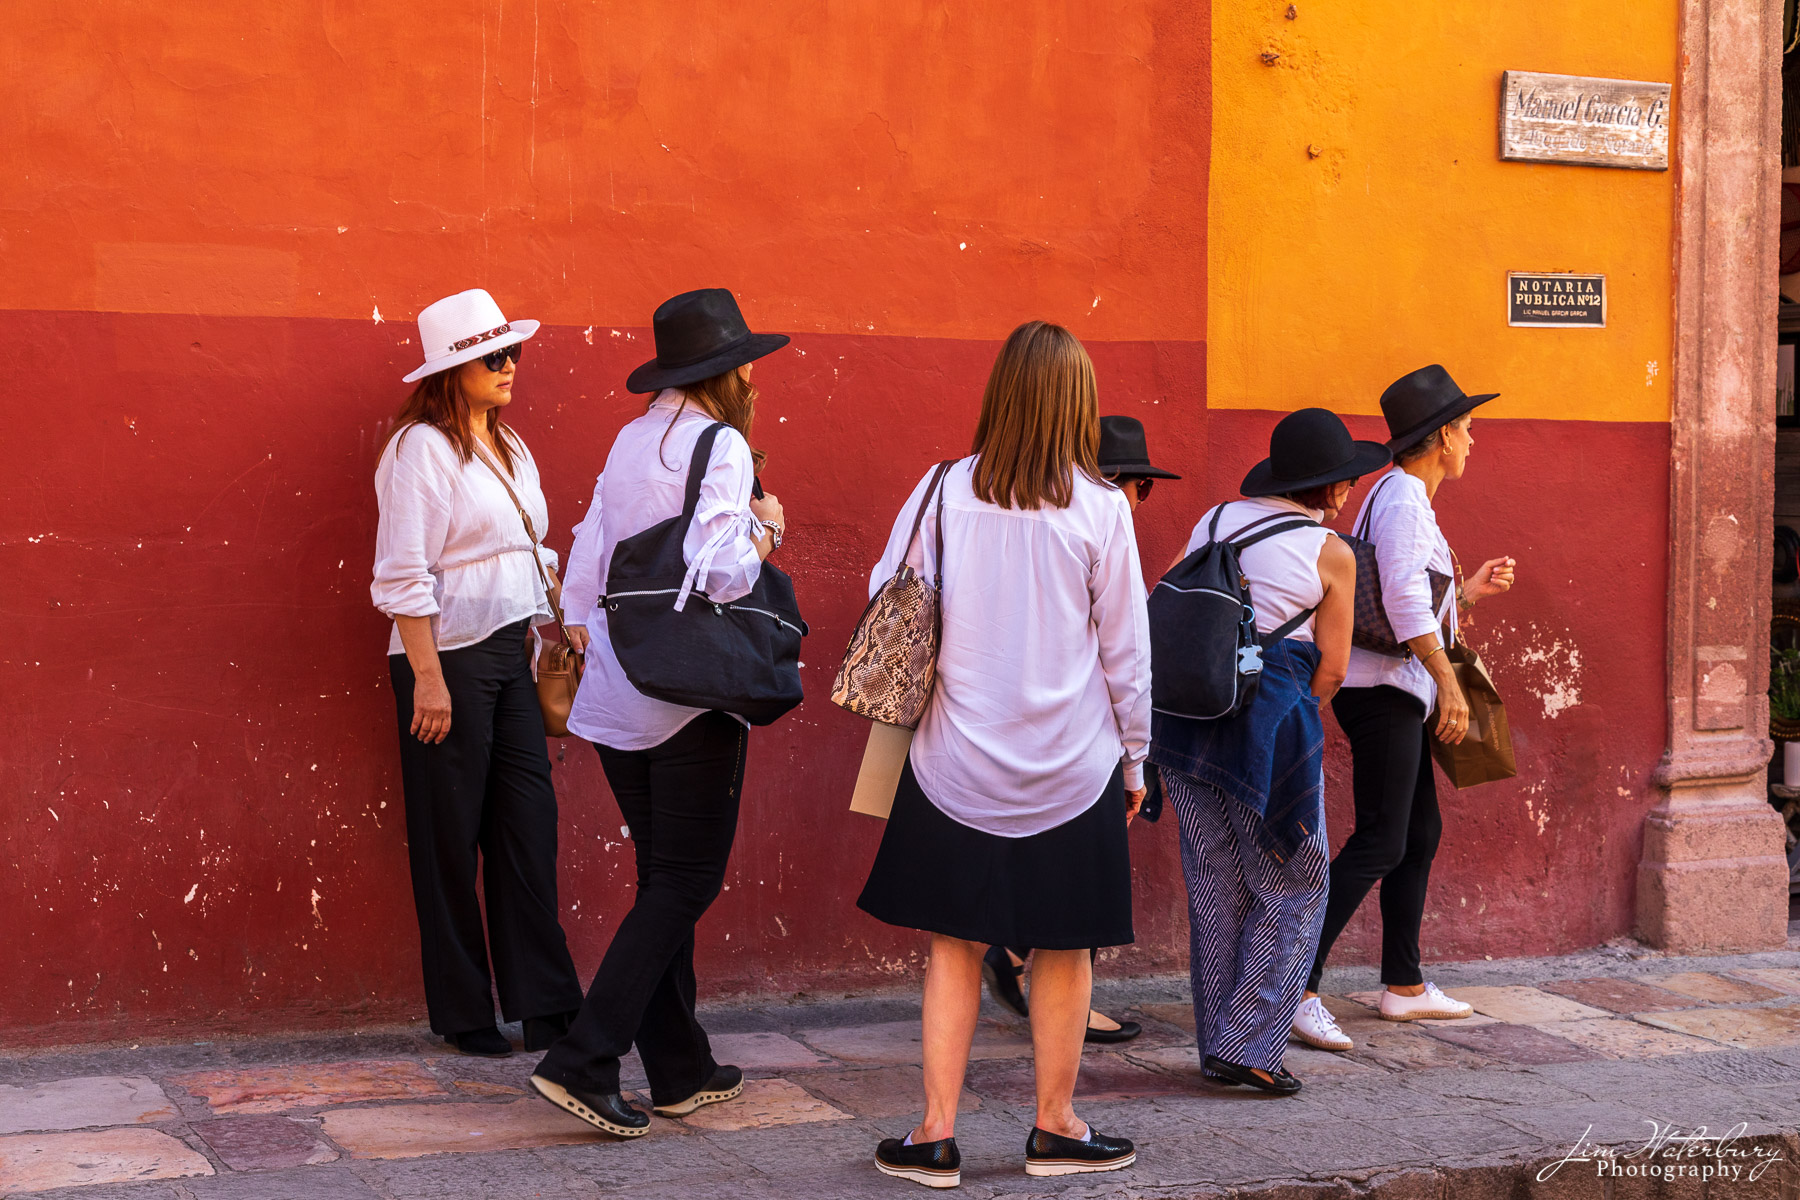 Tourists,, in white and black hats, congregate in central San Miguel.